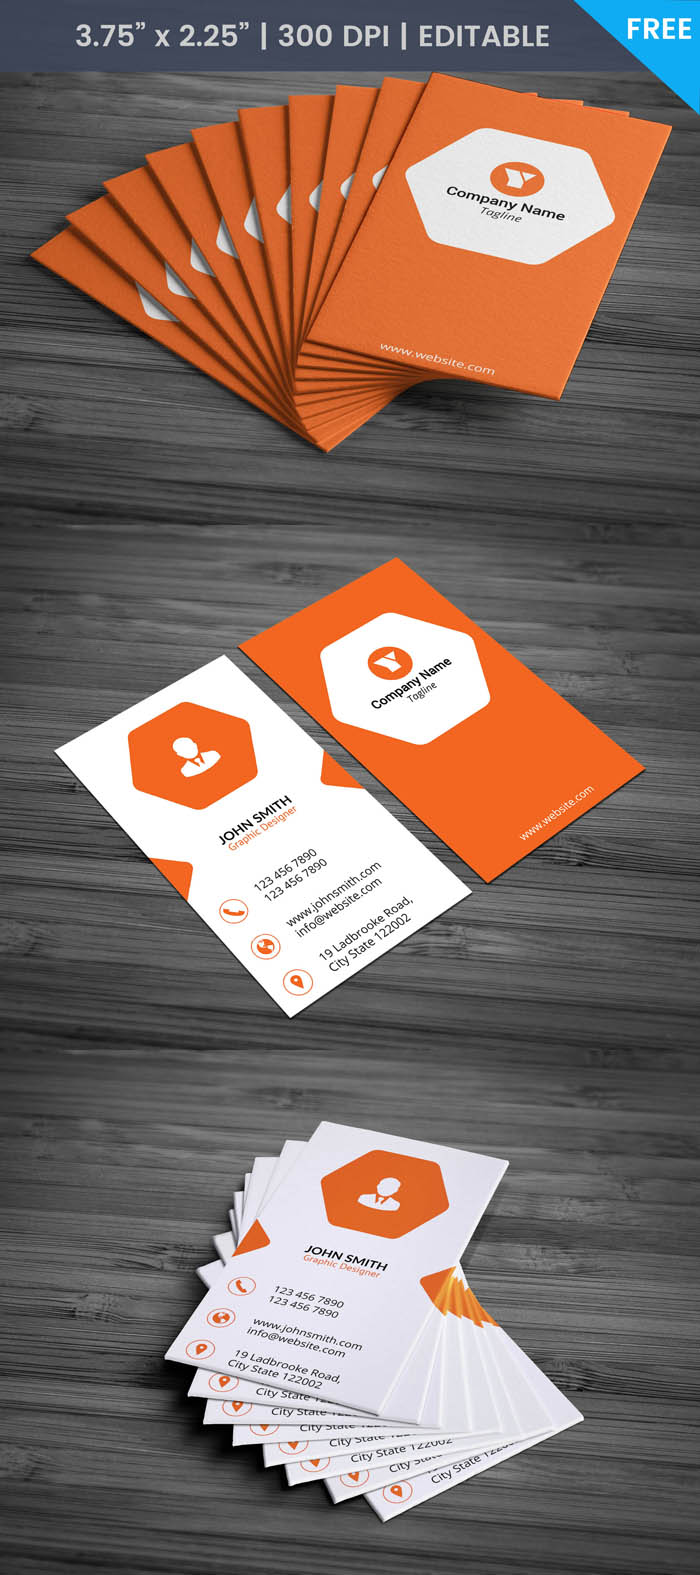 Free Women Legal Advisor Business Card Template